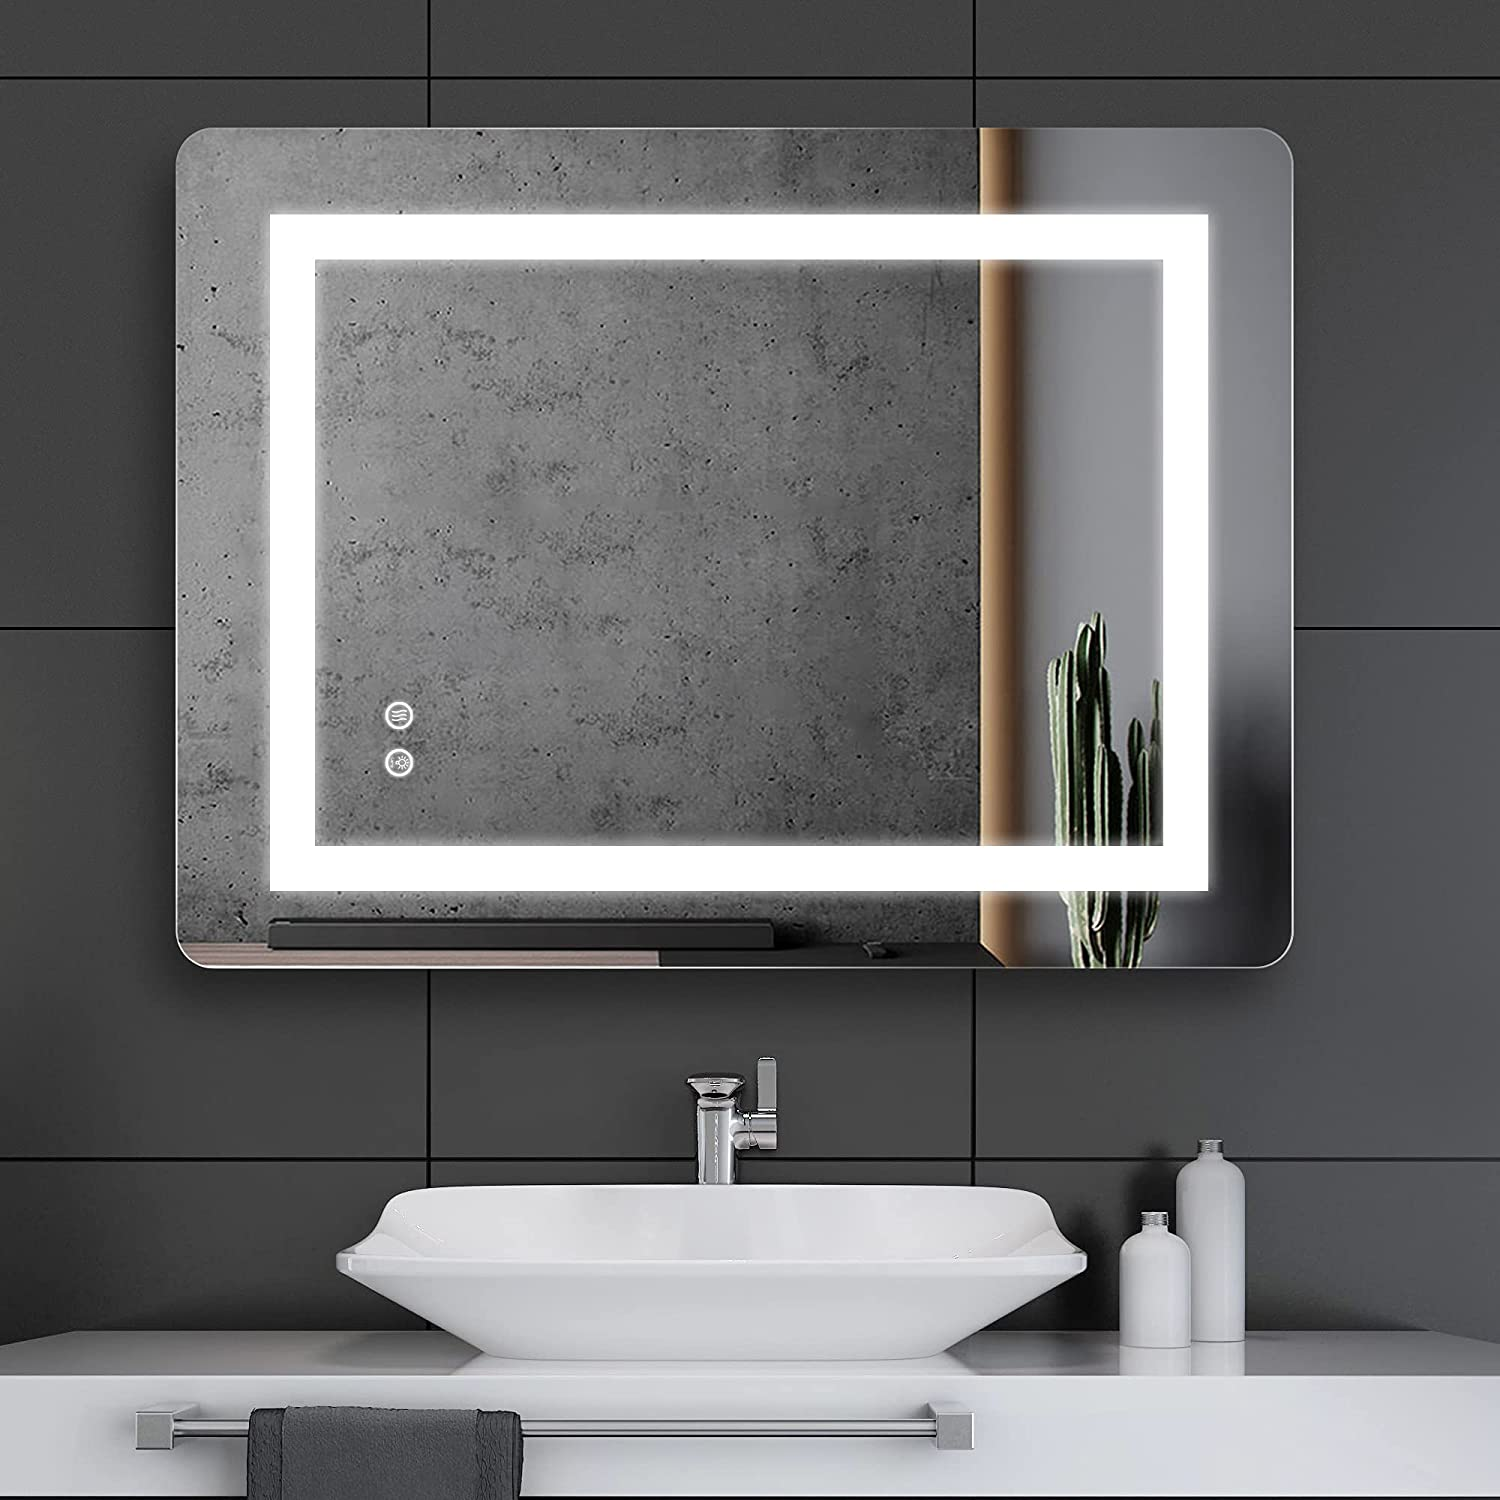 Buy Fralimk Led Mirror For Bathroom 24x32 Inch Lighted Bathroom Mirror With Lights Anti Fog Led Bathroom Mirror Dimmable Lighted Wall Mirrors With 3 Lighting Temperature Setting Horizontal Vertical Online In Hungary B09461gwzr